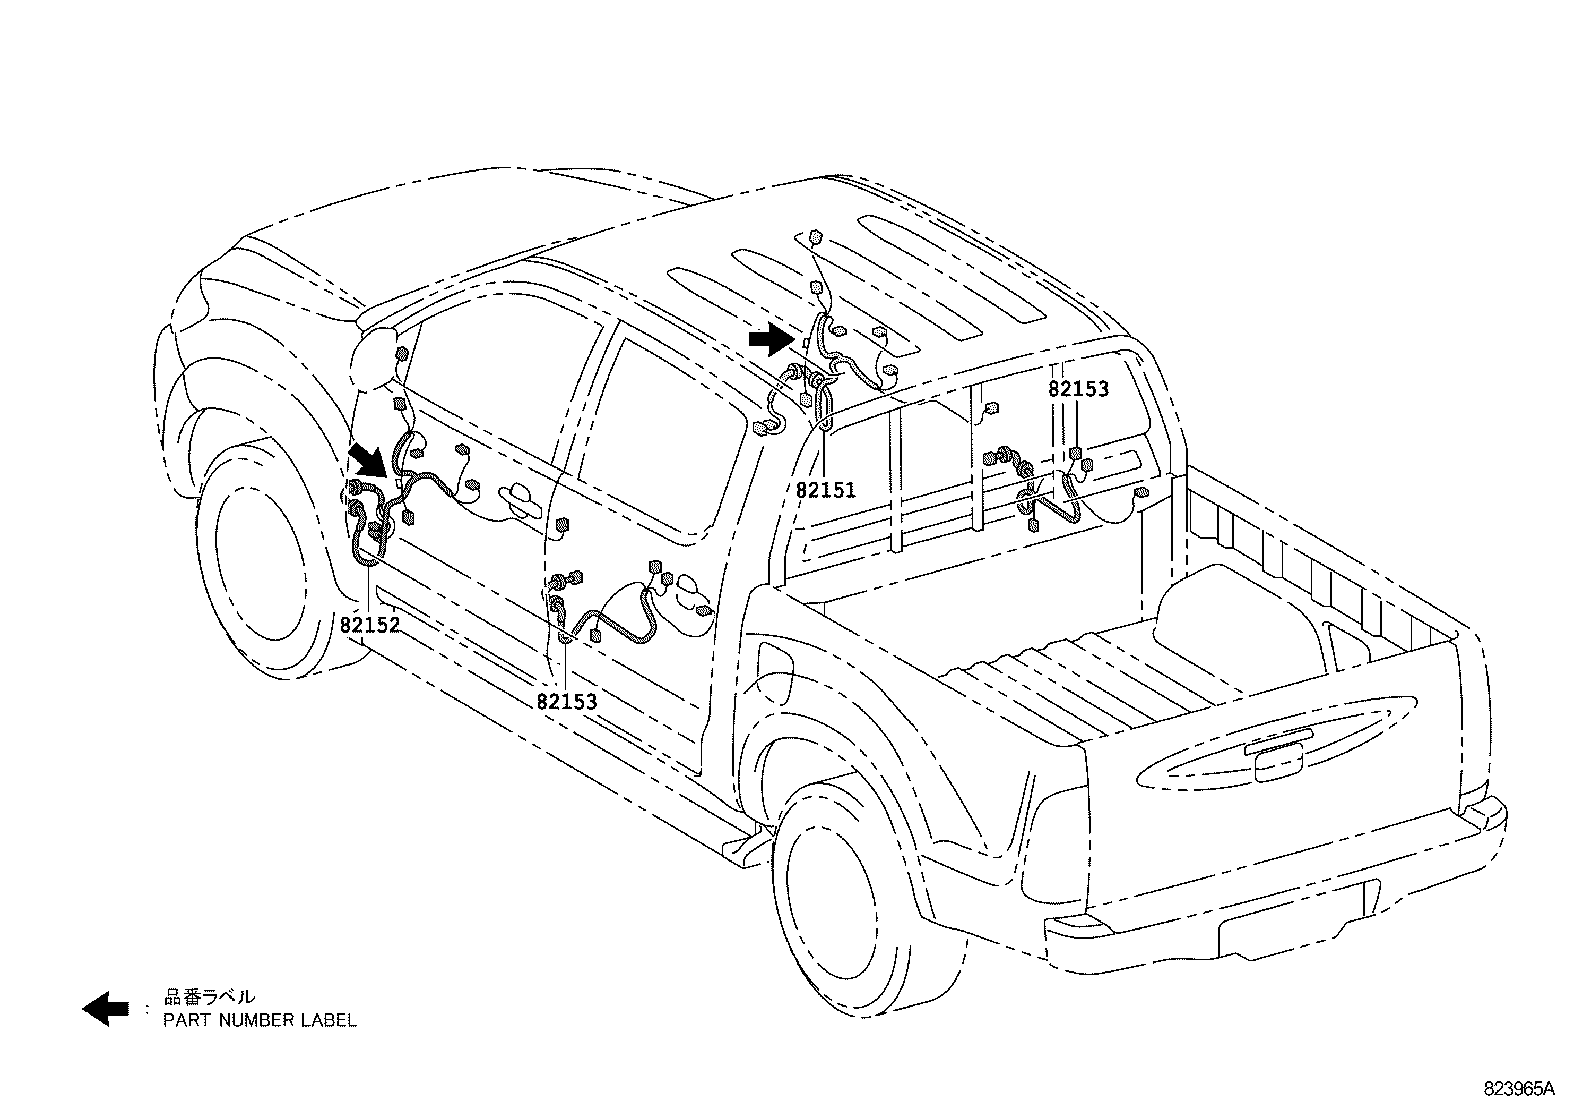 Free coloring pages of hilux for